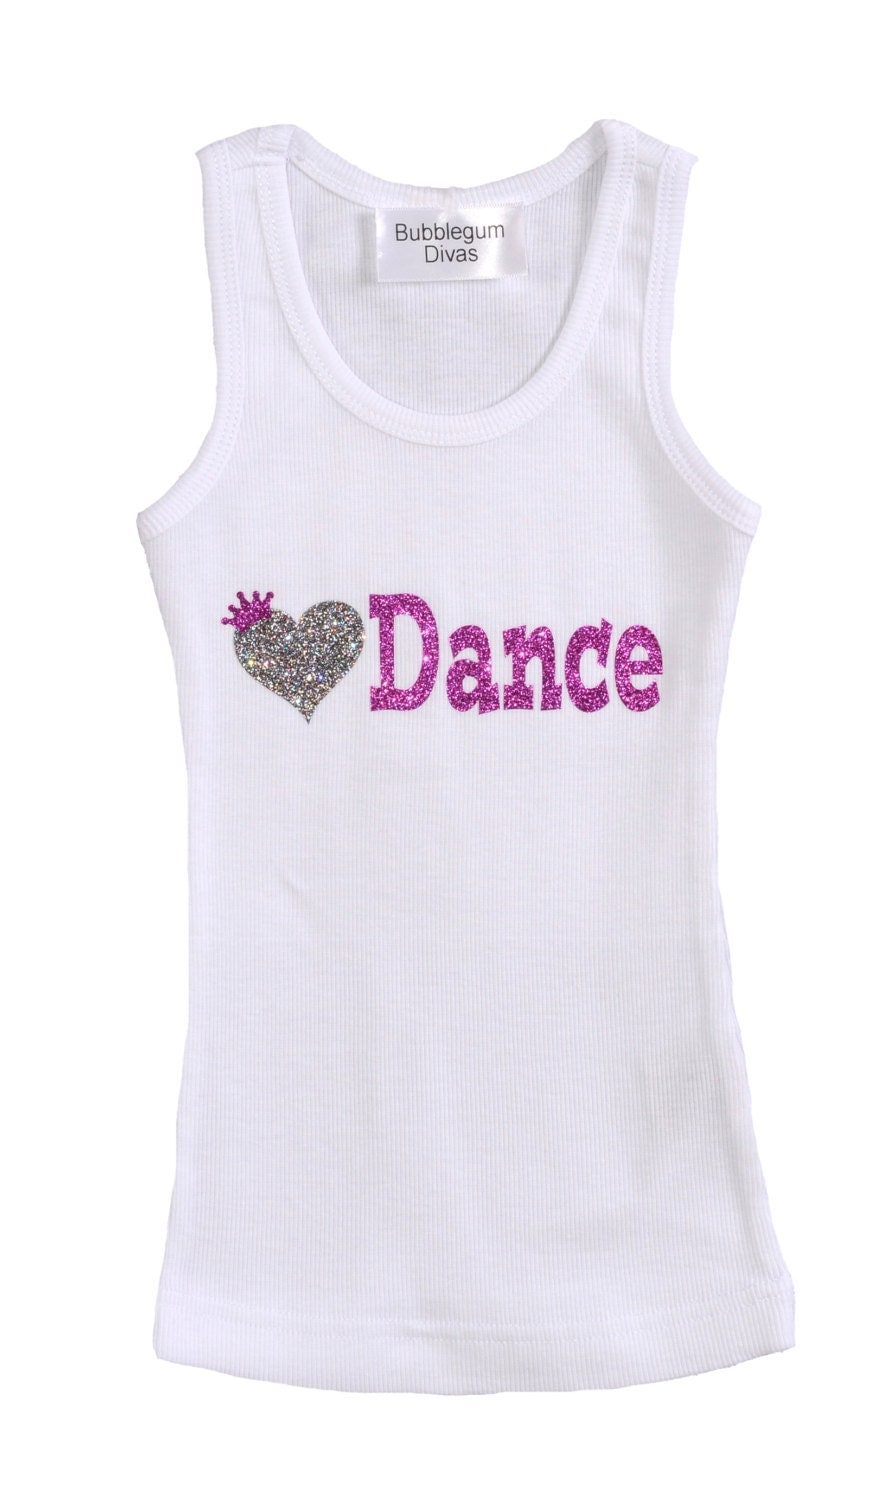 IdanceUcheer is an online gift store for dancers, cheerleaders and gymnasts. We offer a wide variety of quality items at affordable prices. We are sure to have the perfect item for that special someone, whether it is to celebrate a first solo at a dance recital, a flawless performance at a cheer competition or a perfect 10 at a gymnastic meet.